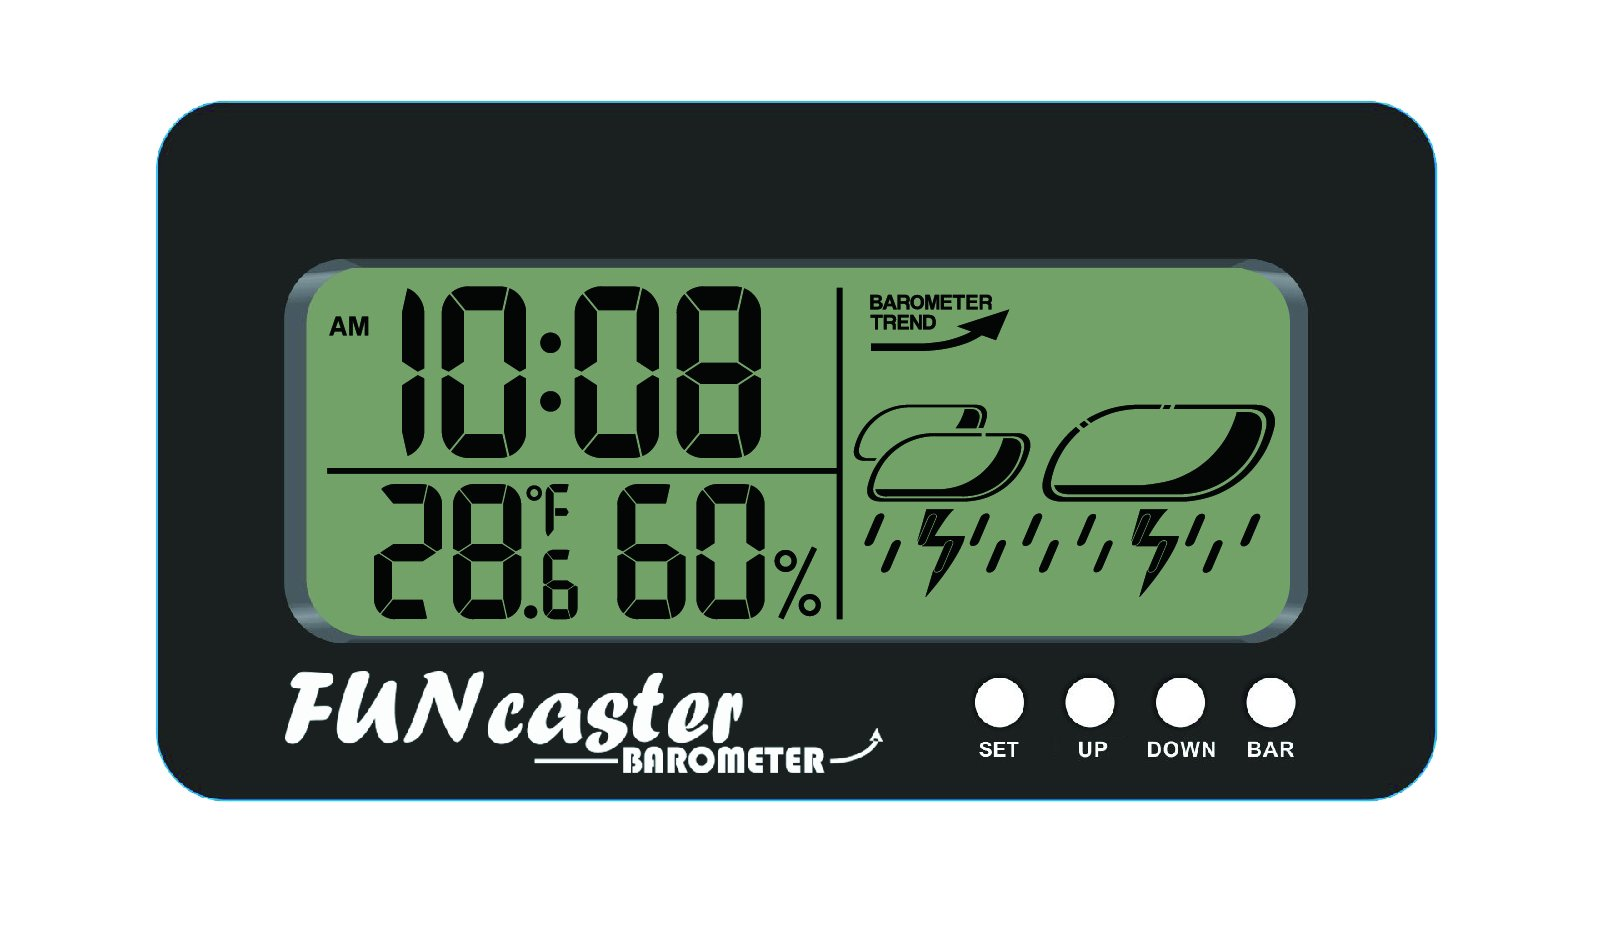 TecScan FUNcaster Barometer Ambient Weather Clock for Golf Cart, Boat, Home, Office Easy to See Time, Temp, Humidity, Forecast